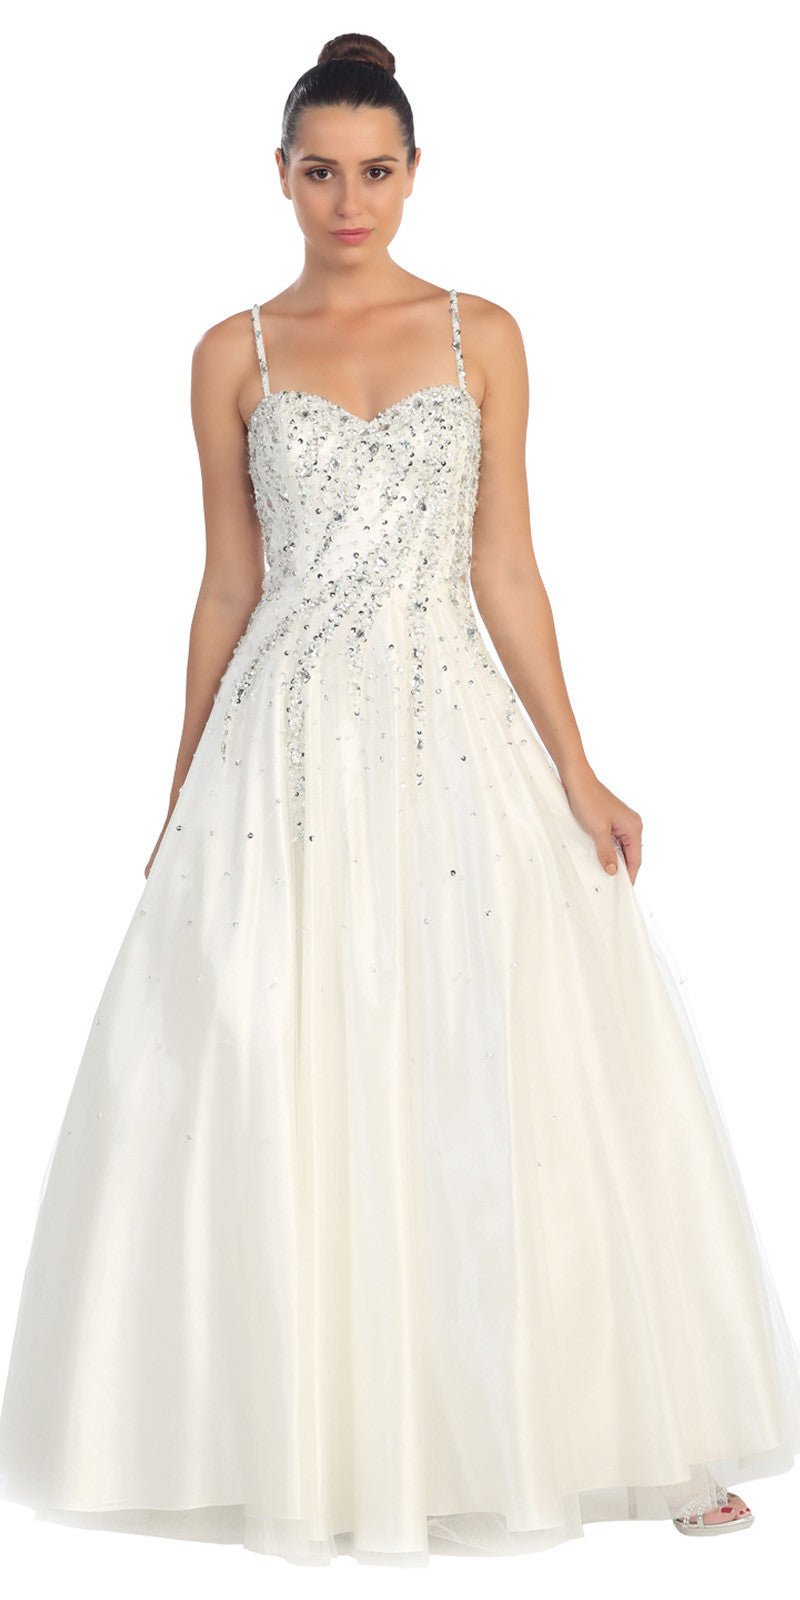 Cinderella Gown White A Line Poofy Spaghetti Strap Sequins